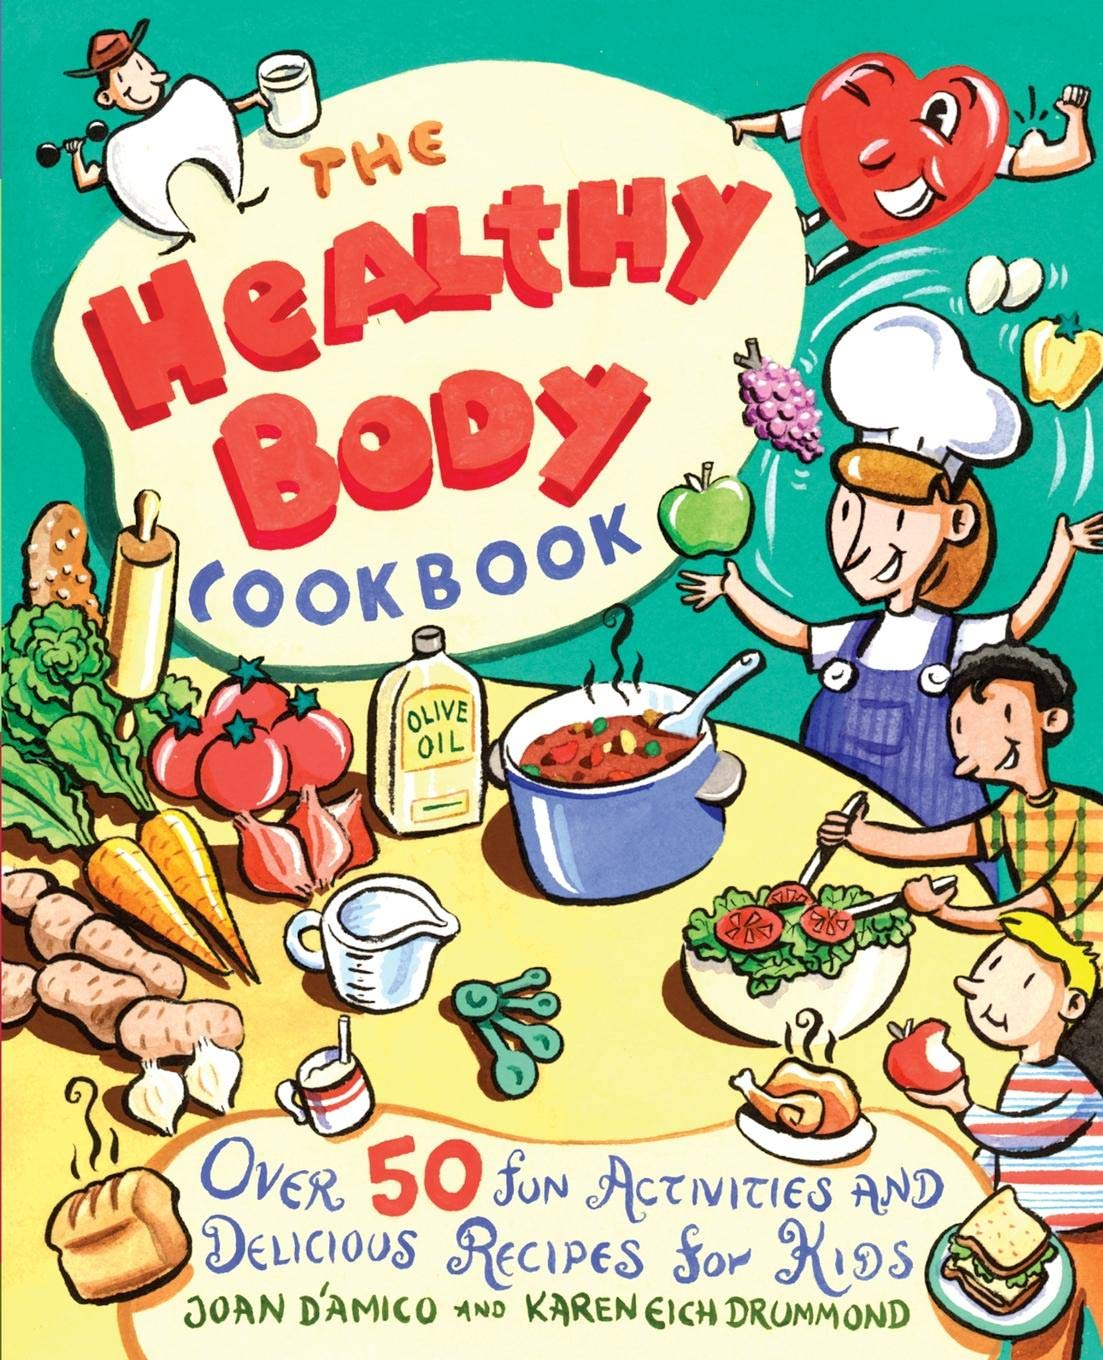 The Healthy Body Cookbook Over 50 Fun Activities and Delicious Recipes for Kids